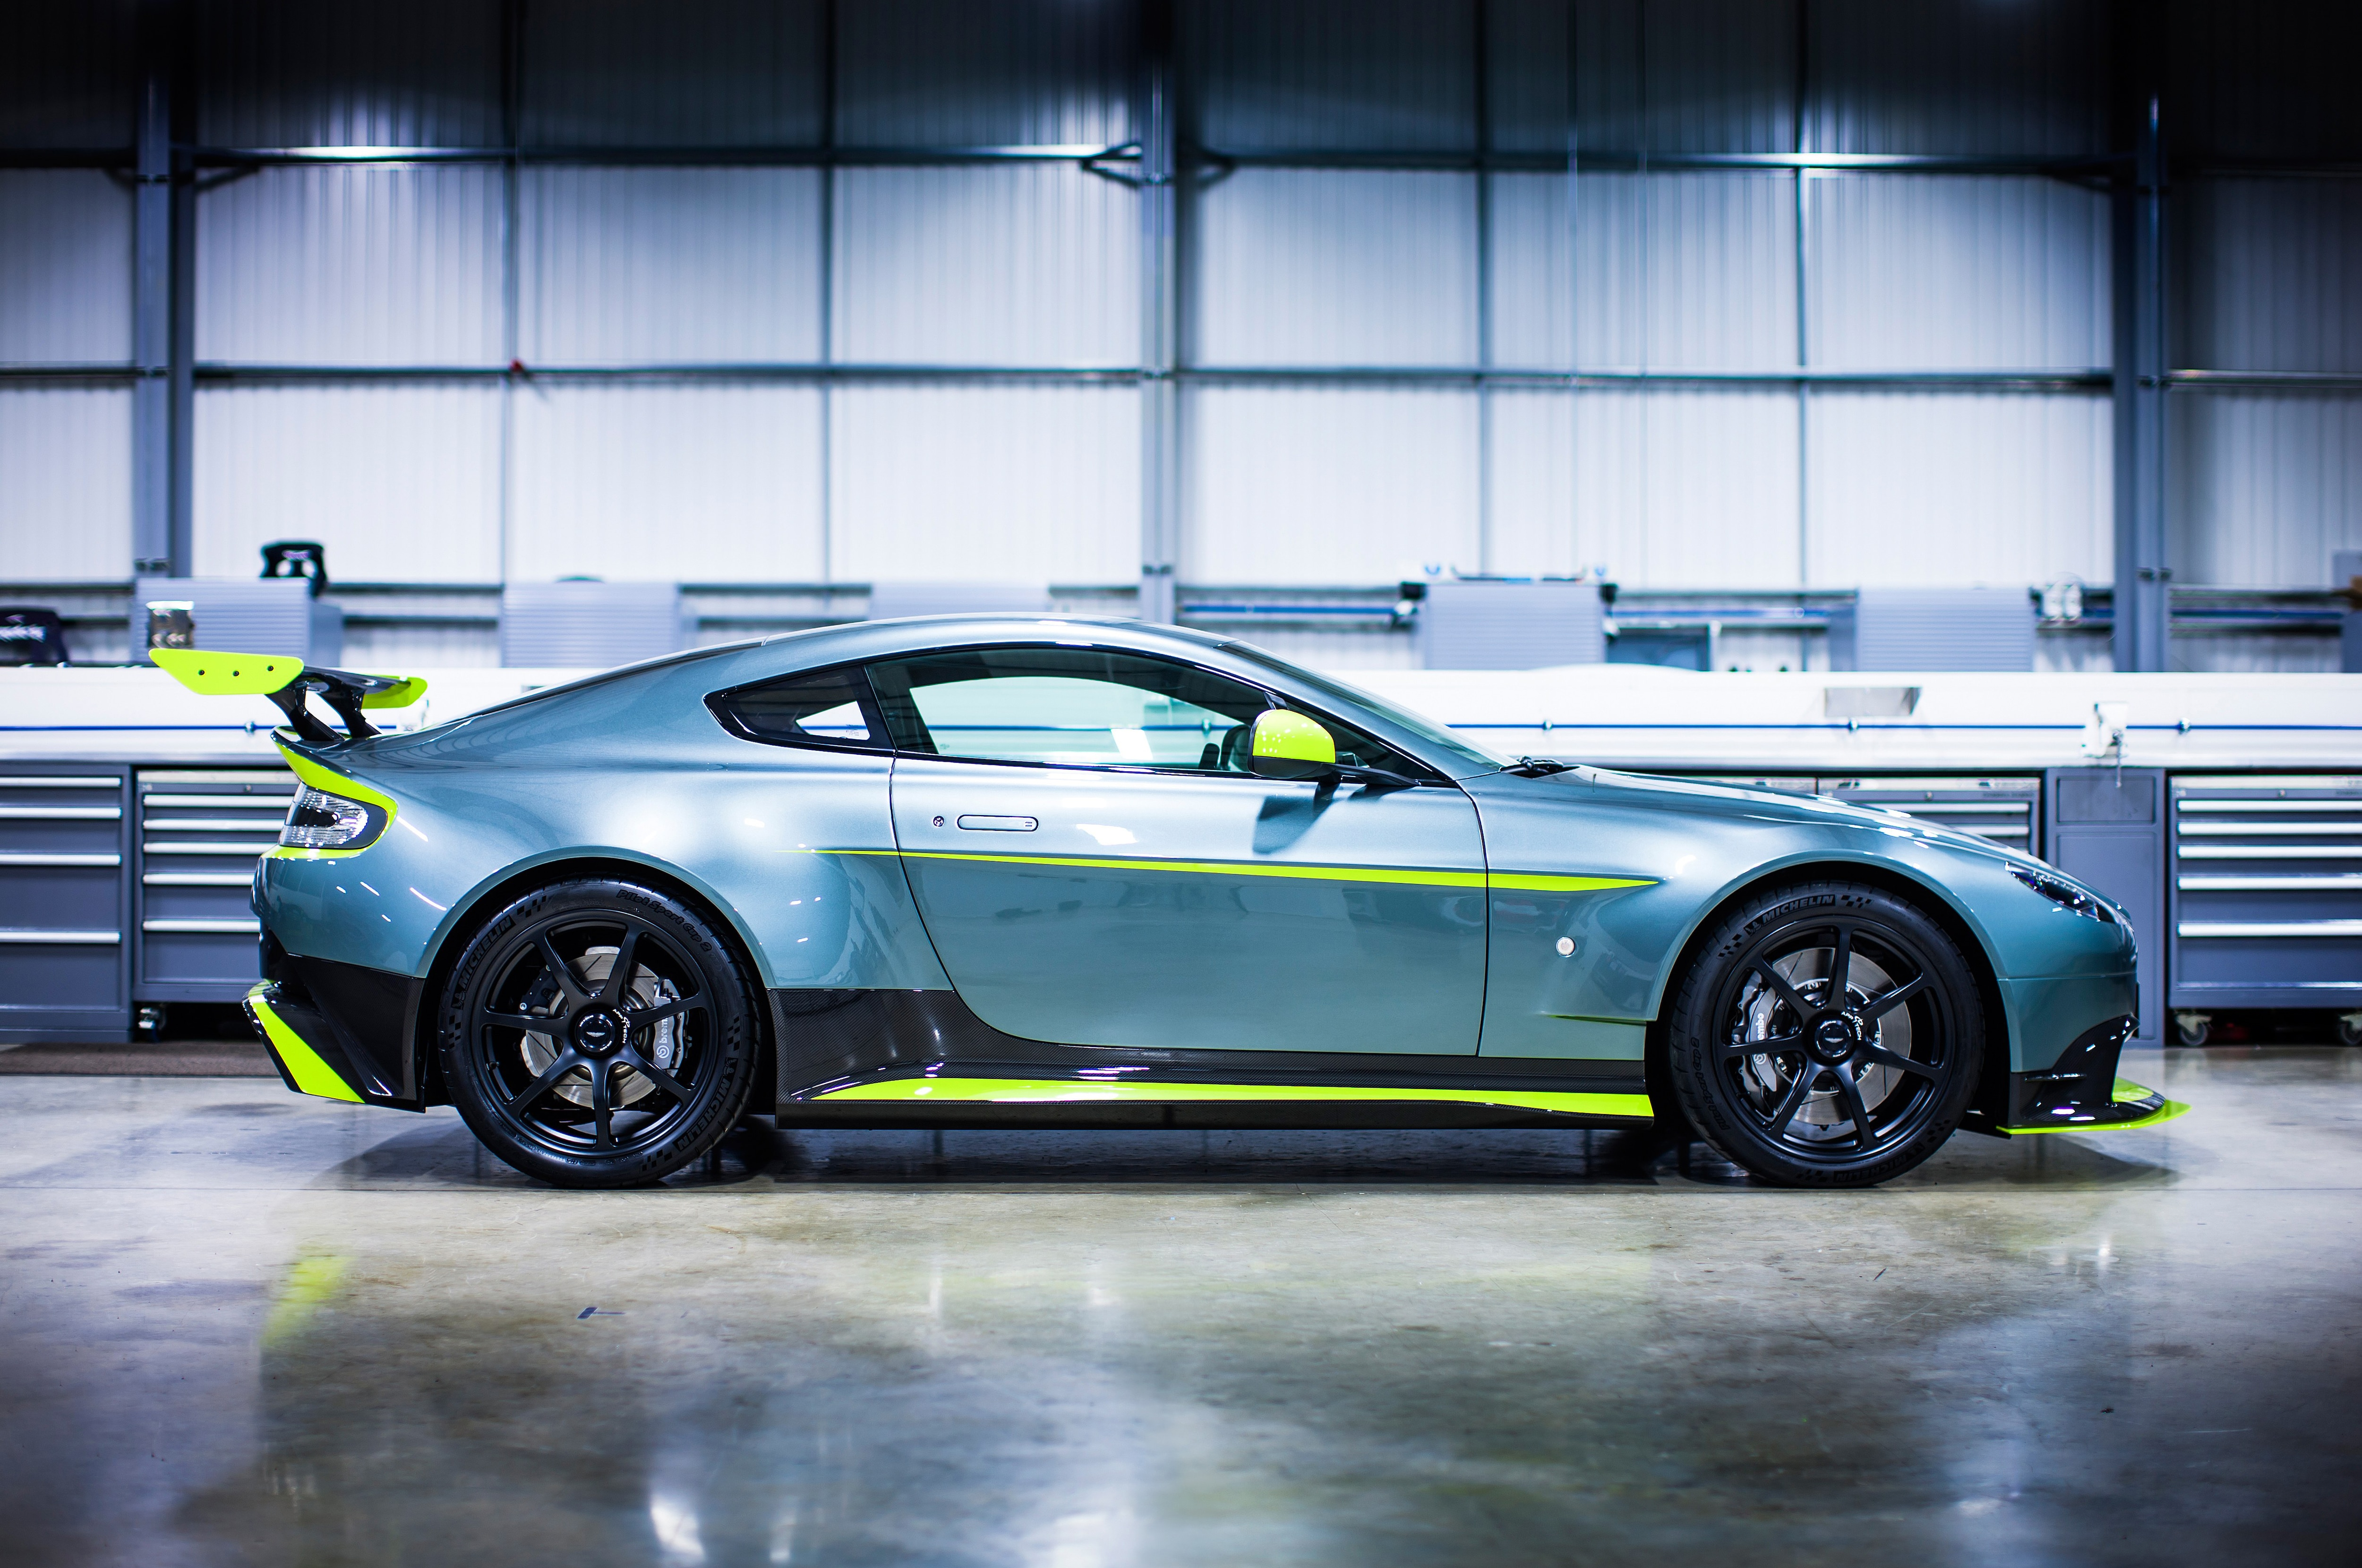 Aston Martin Gt8 >> Aston Martin Vantage Gt8 Revealed With Lemans Looks